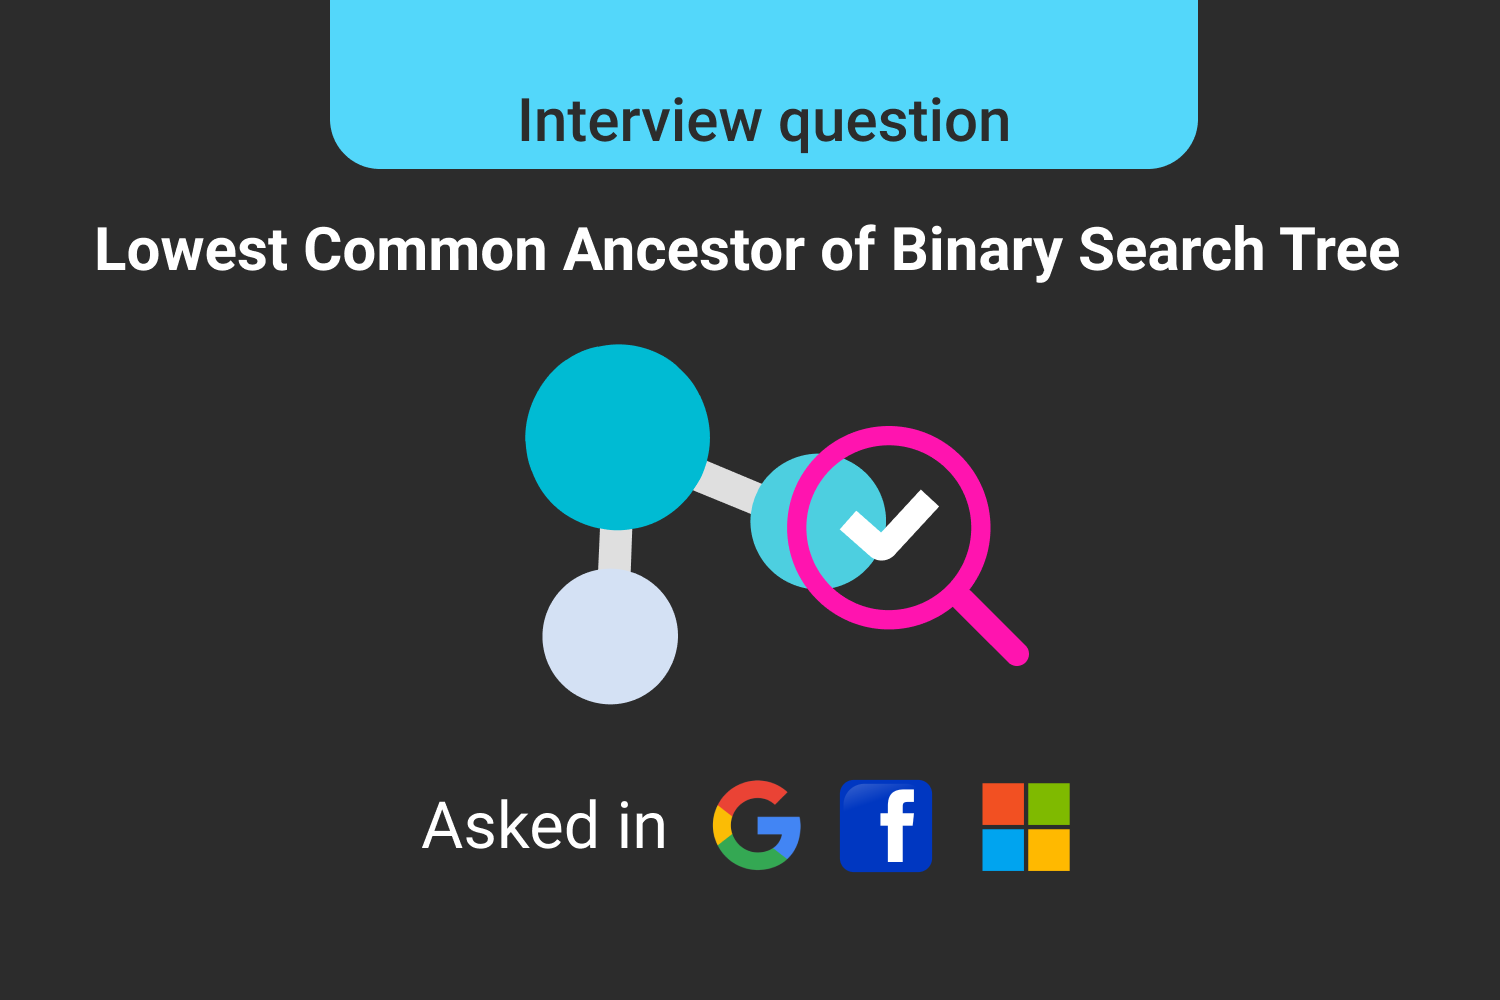 Lowest Common Ancestor of a Binary Search Tree